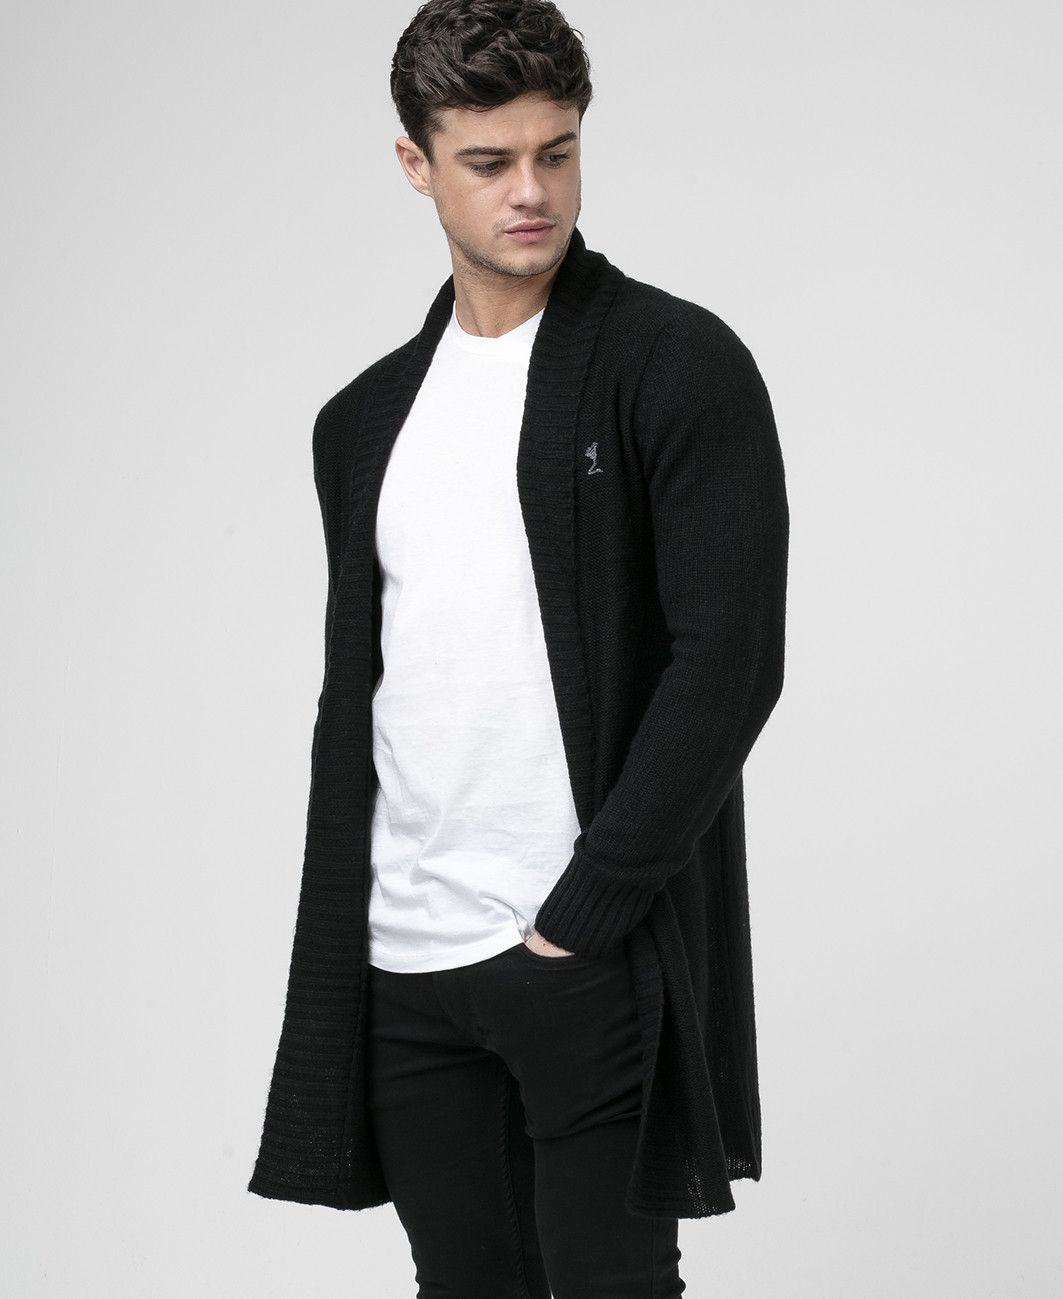 RALED BLACK CARDIGAN - New in - Mens - £75 | Cardigans For Men ...